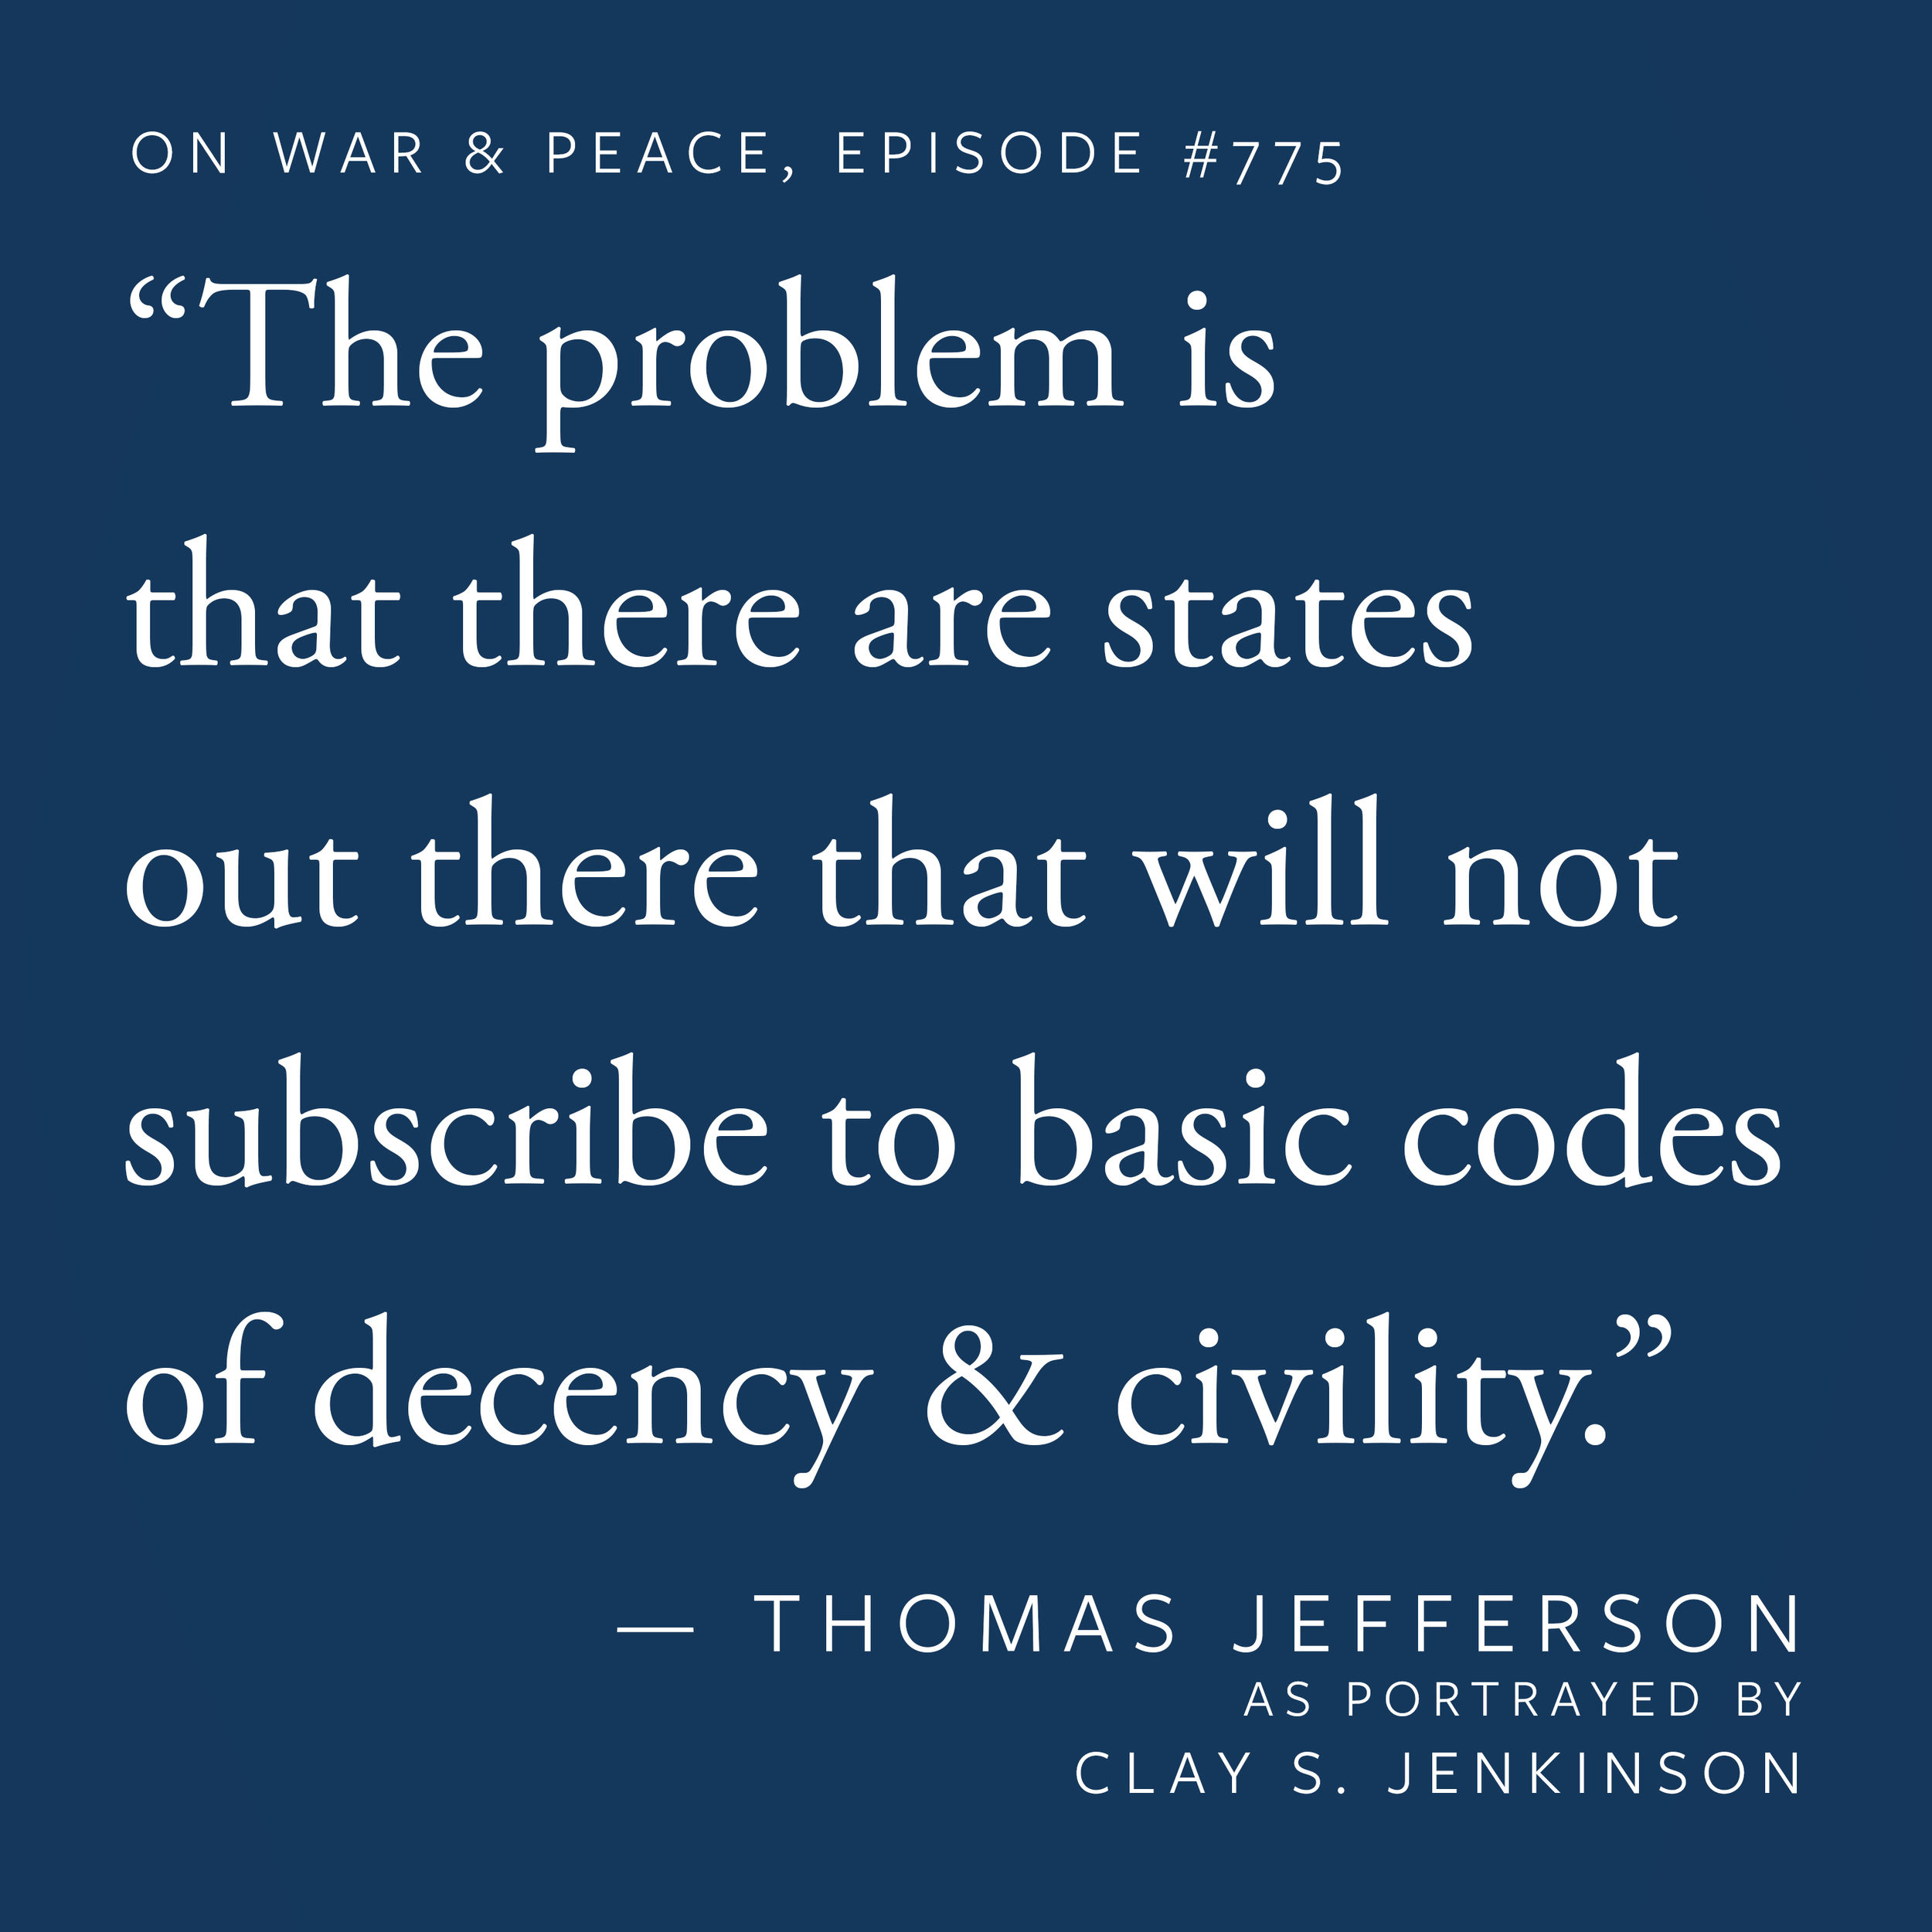 """""""The problem is that there are states out there that will not subscribe to basic codes of decency & civility."""""""